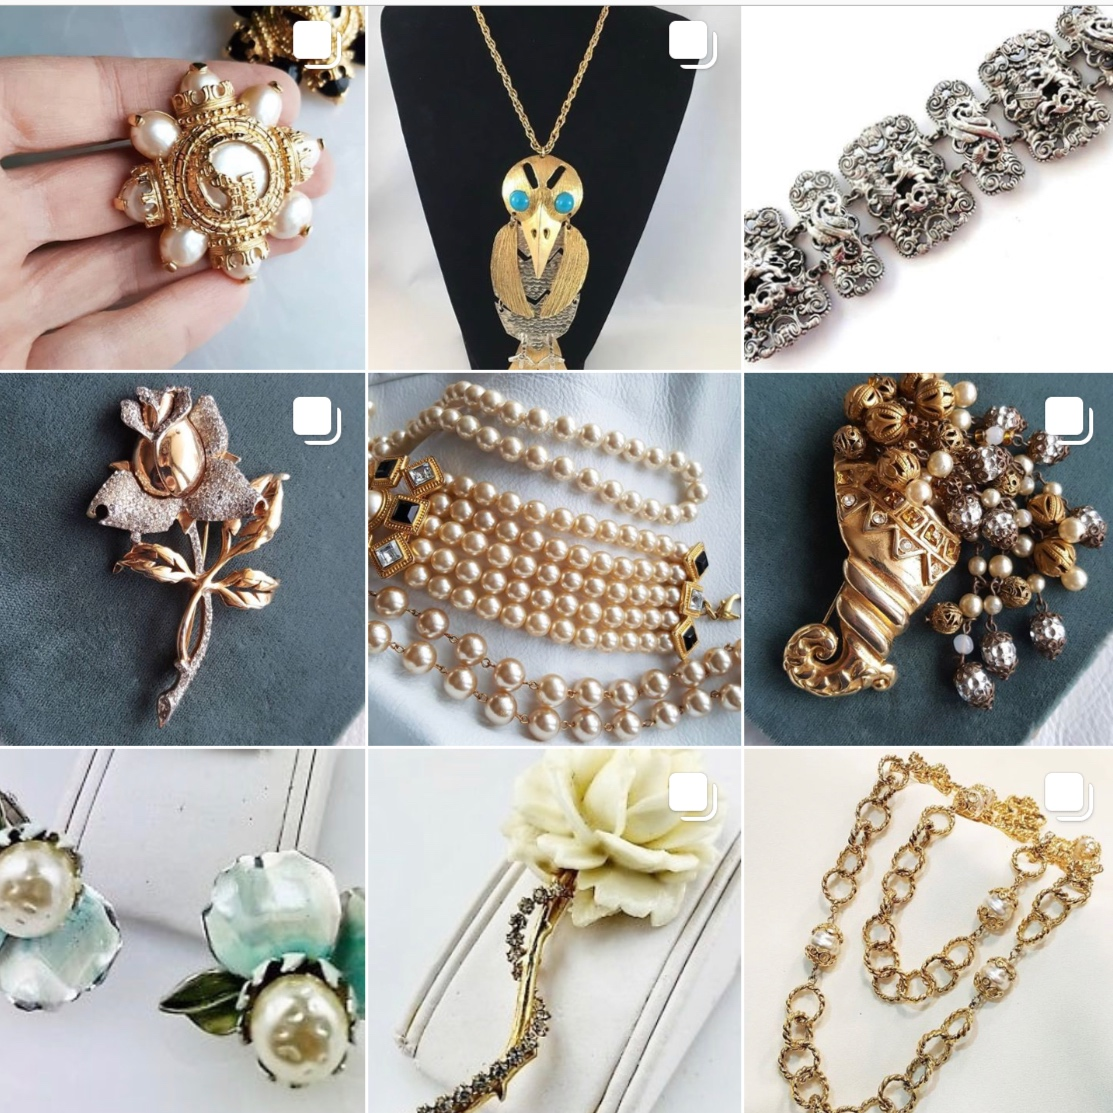 Vintage Atelier - Vintage jewellery, ladies and gentlemen! The shop has some very stylish earrings from Oscar de la Renta, Givenchy and Dior. And most of them are under $100! Which is not much for a vintage pair of earrings from a famous fashion house, don't you think?